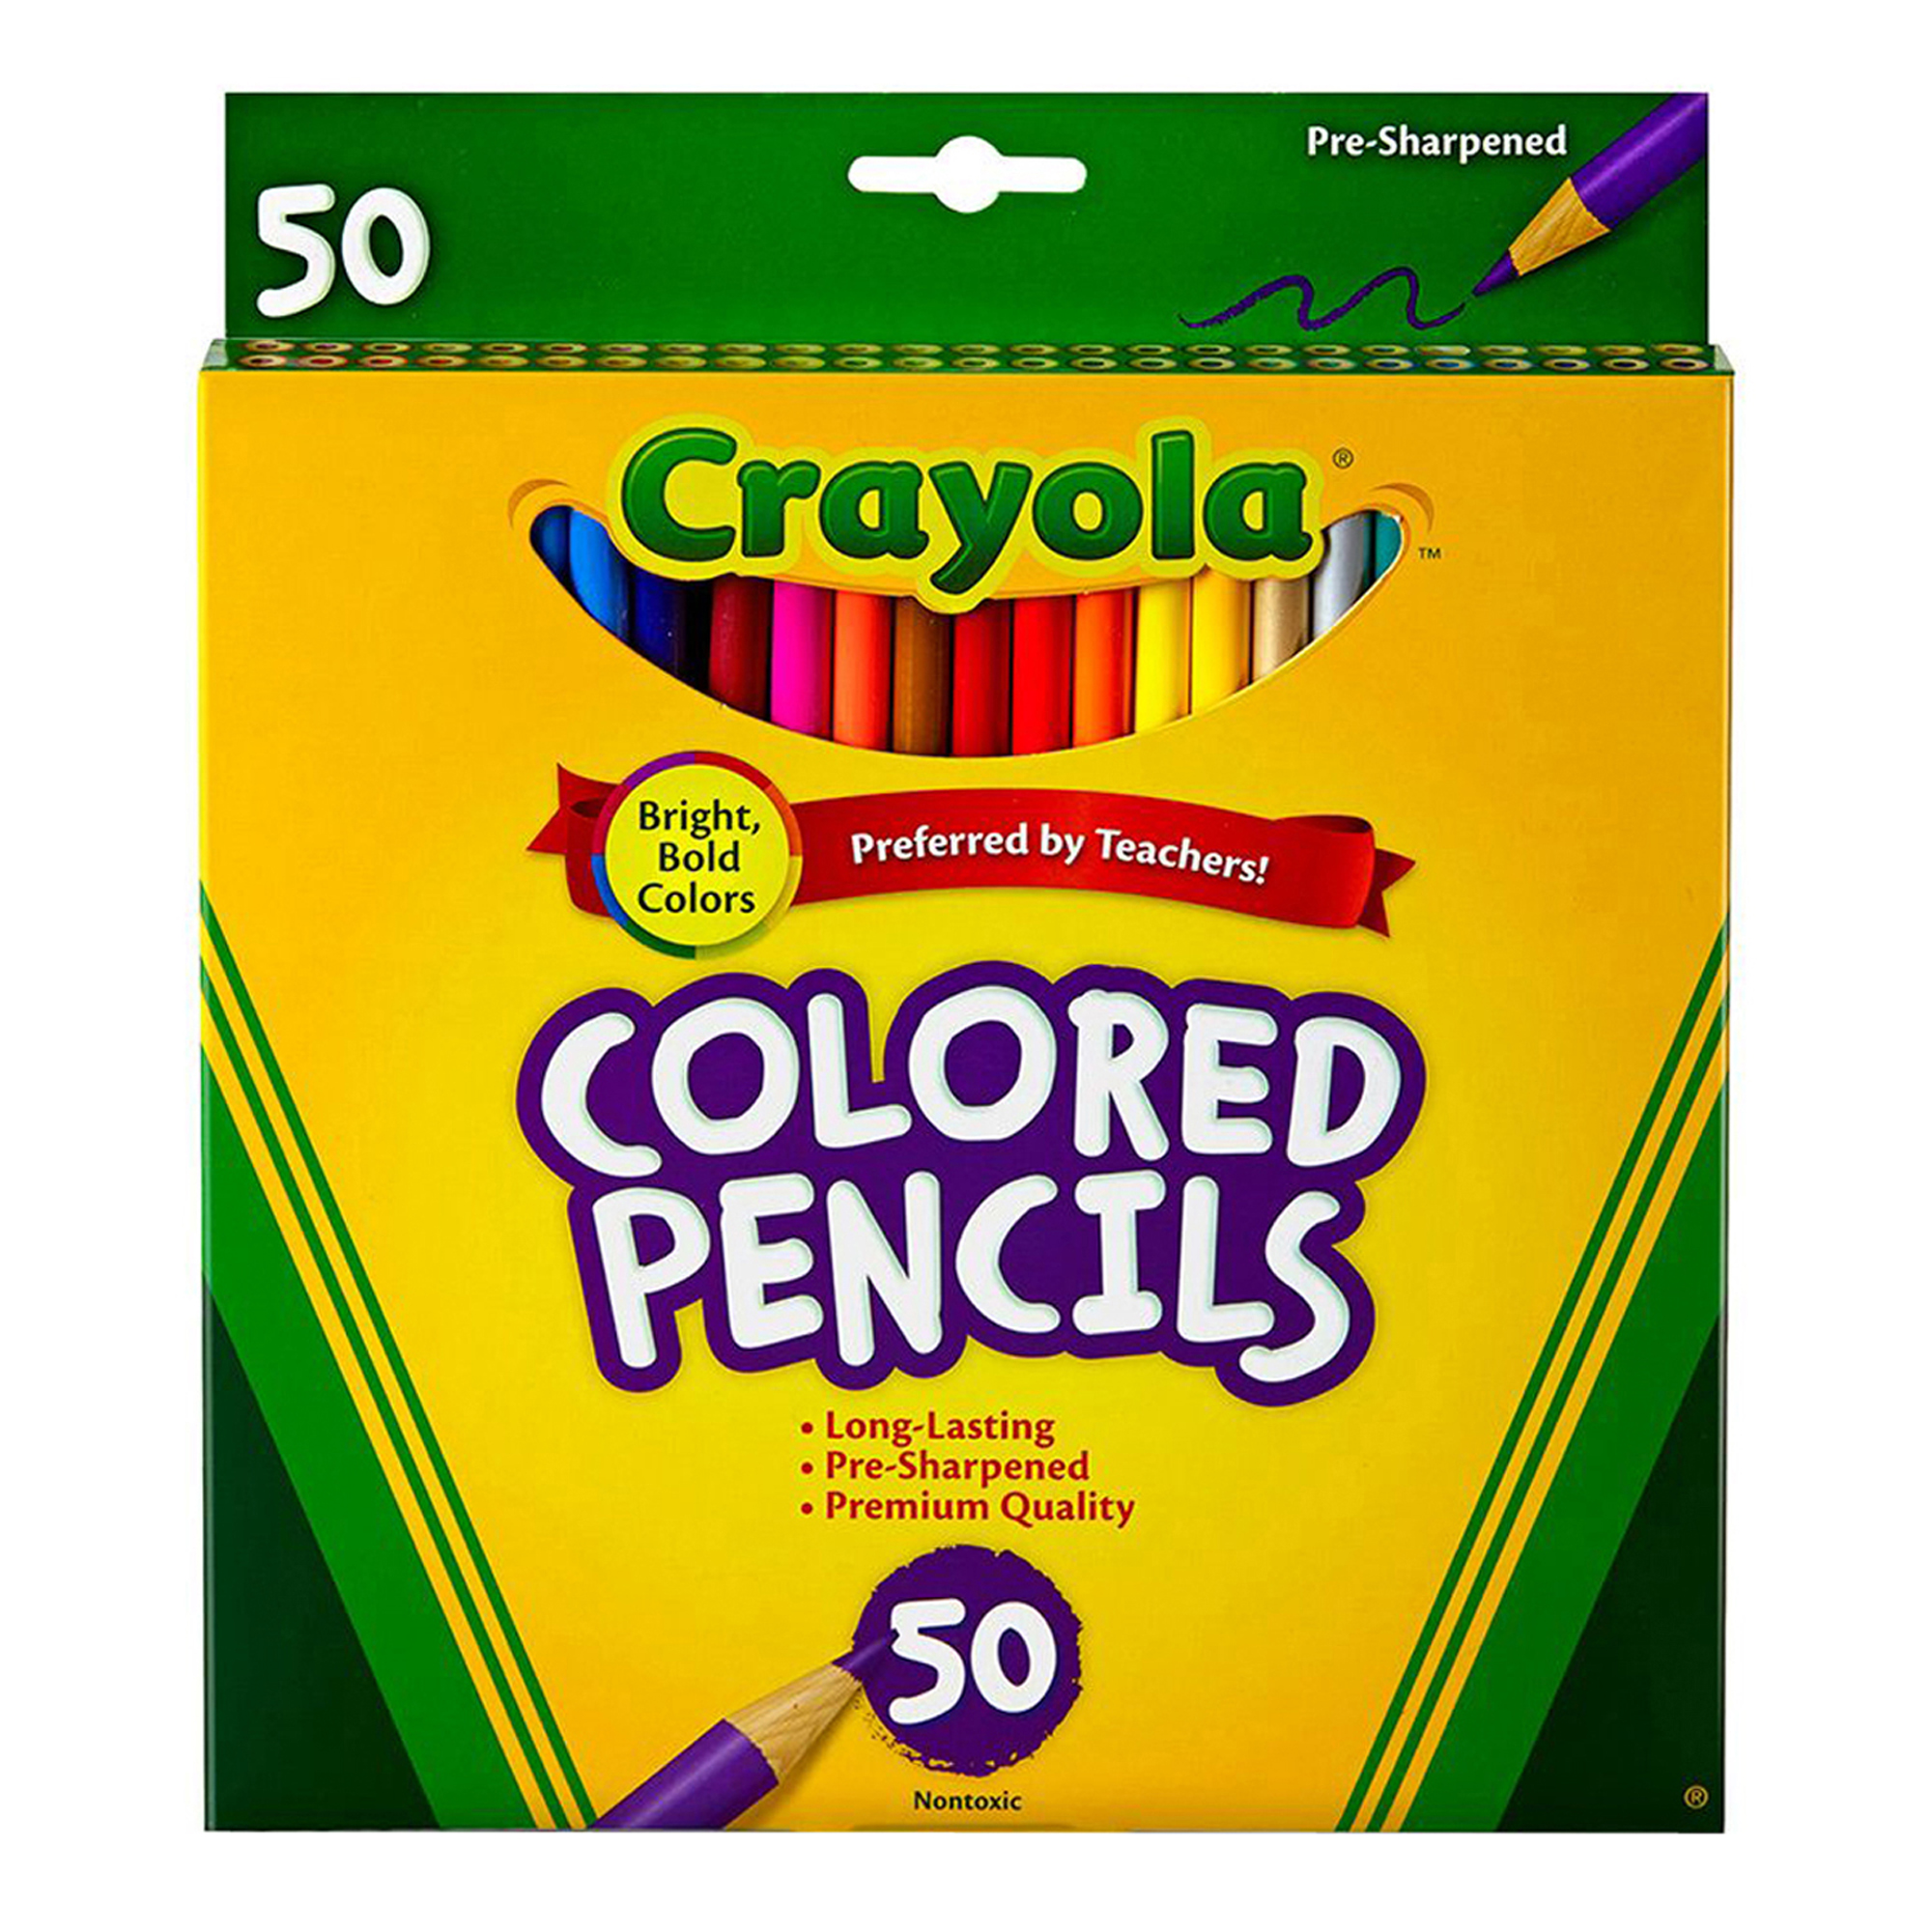 Crayola® Colored Pencils, Full Length, Assorted Colors, 50 Count